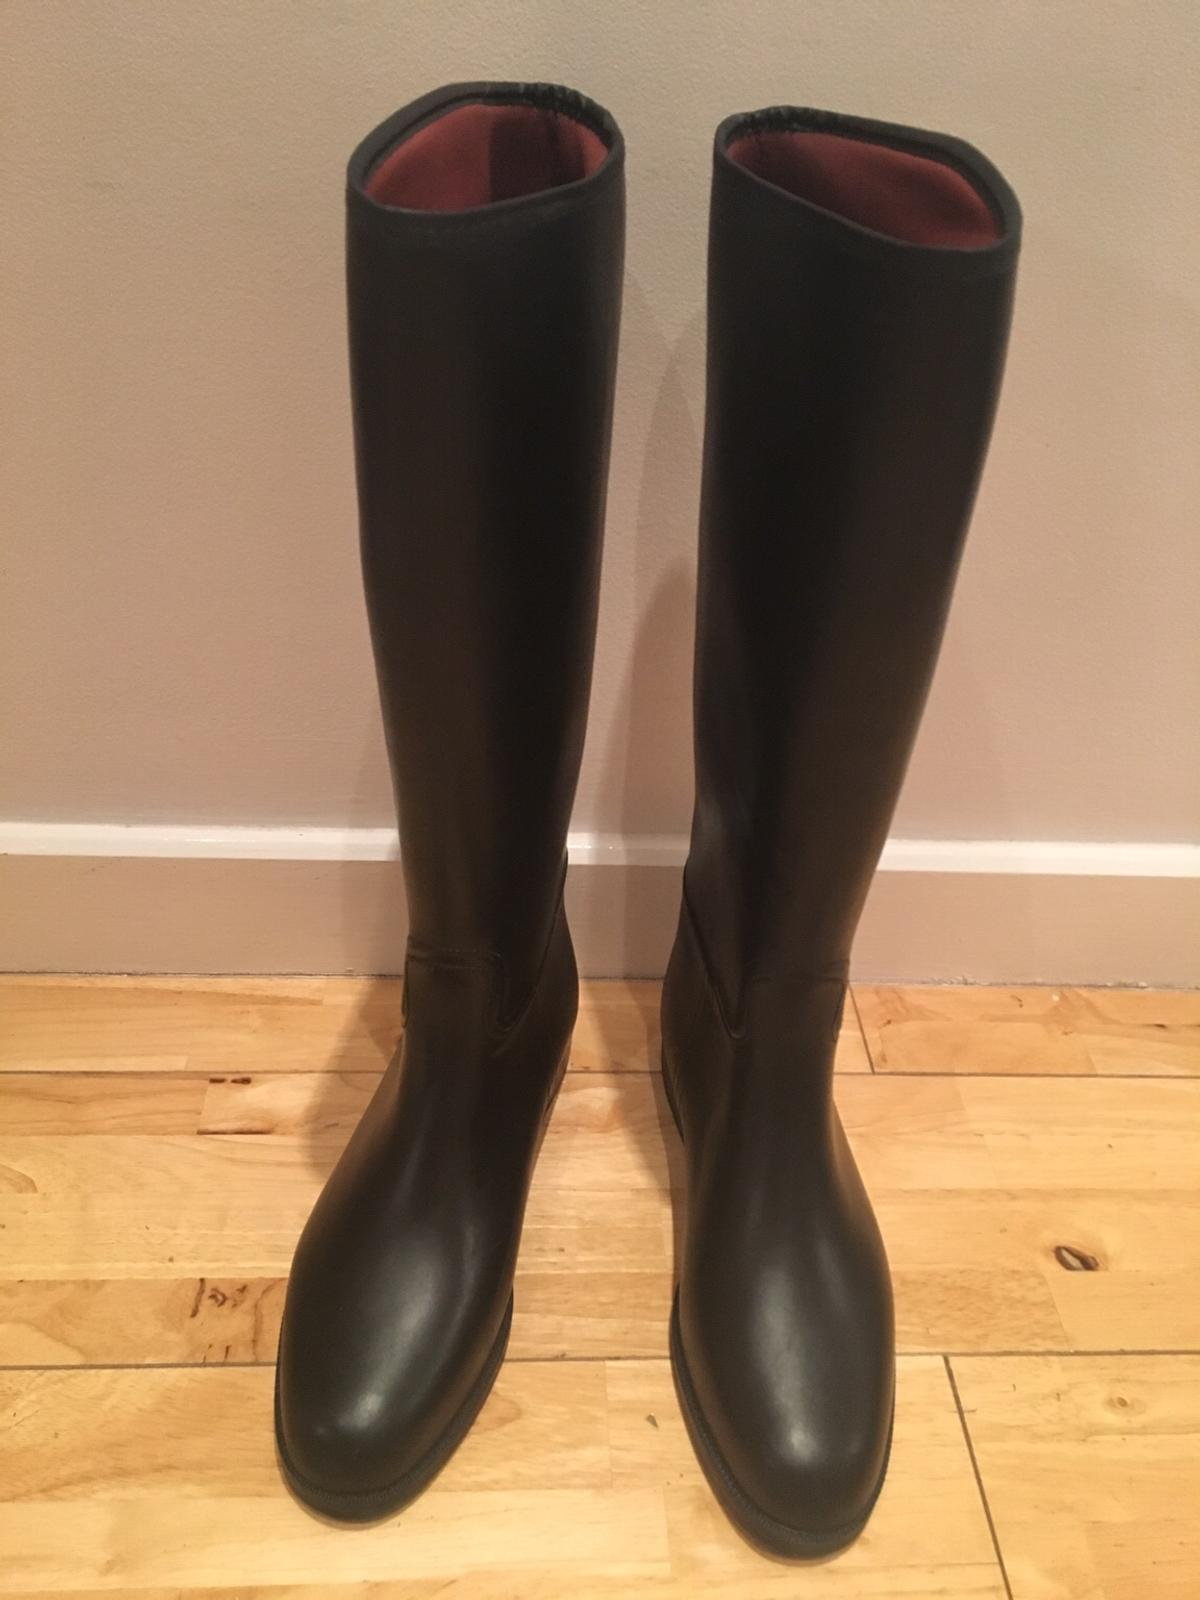 high fashion on feet at clearance Loveson riding boots men's size 8